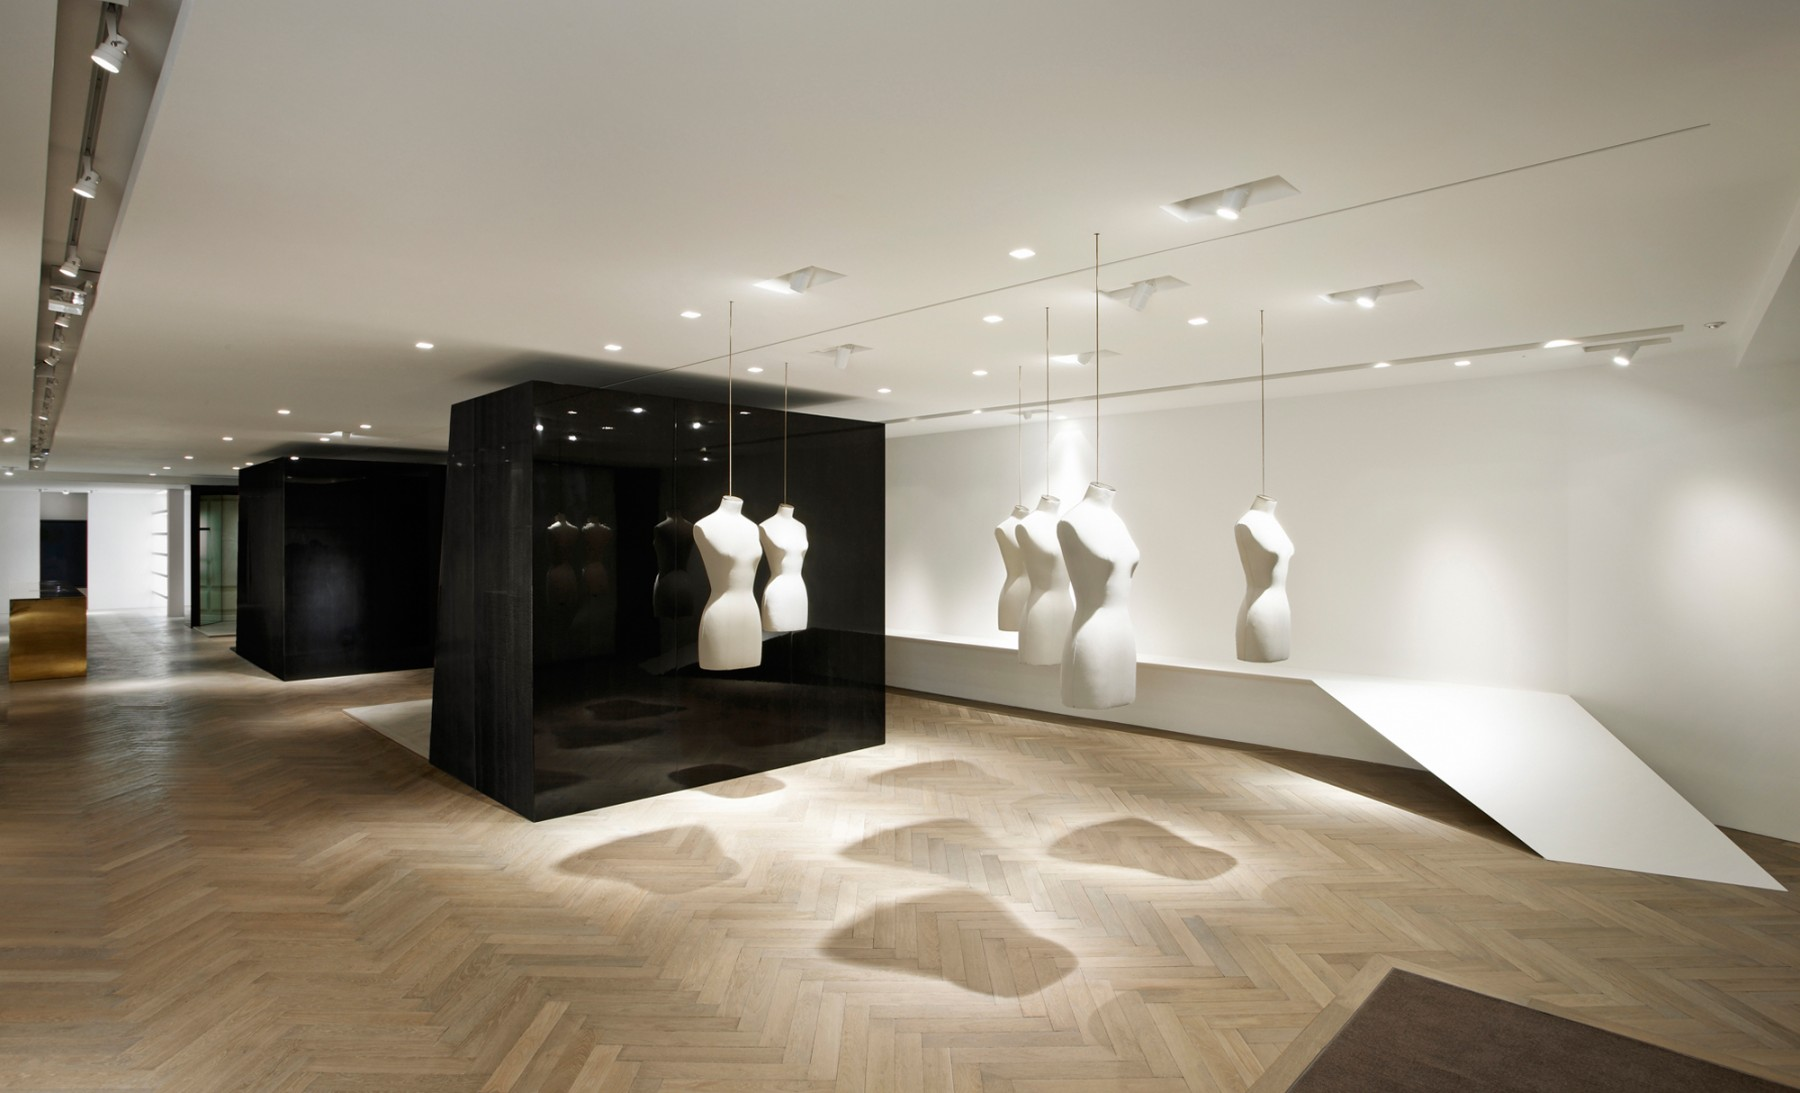 Givenchy-Paris-boutique-designer-fashion-retail-Jamie-Fobert-Architects-shop-preopening-2-case-study